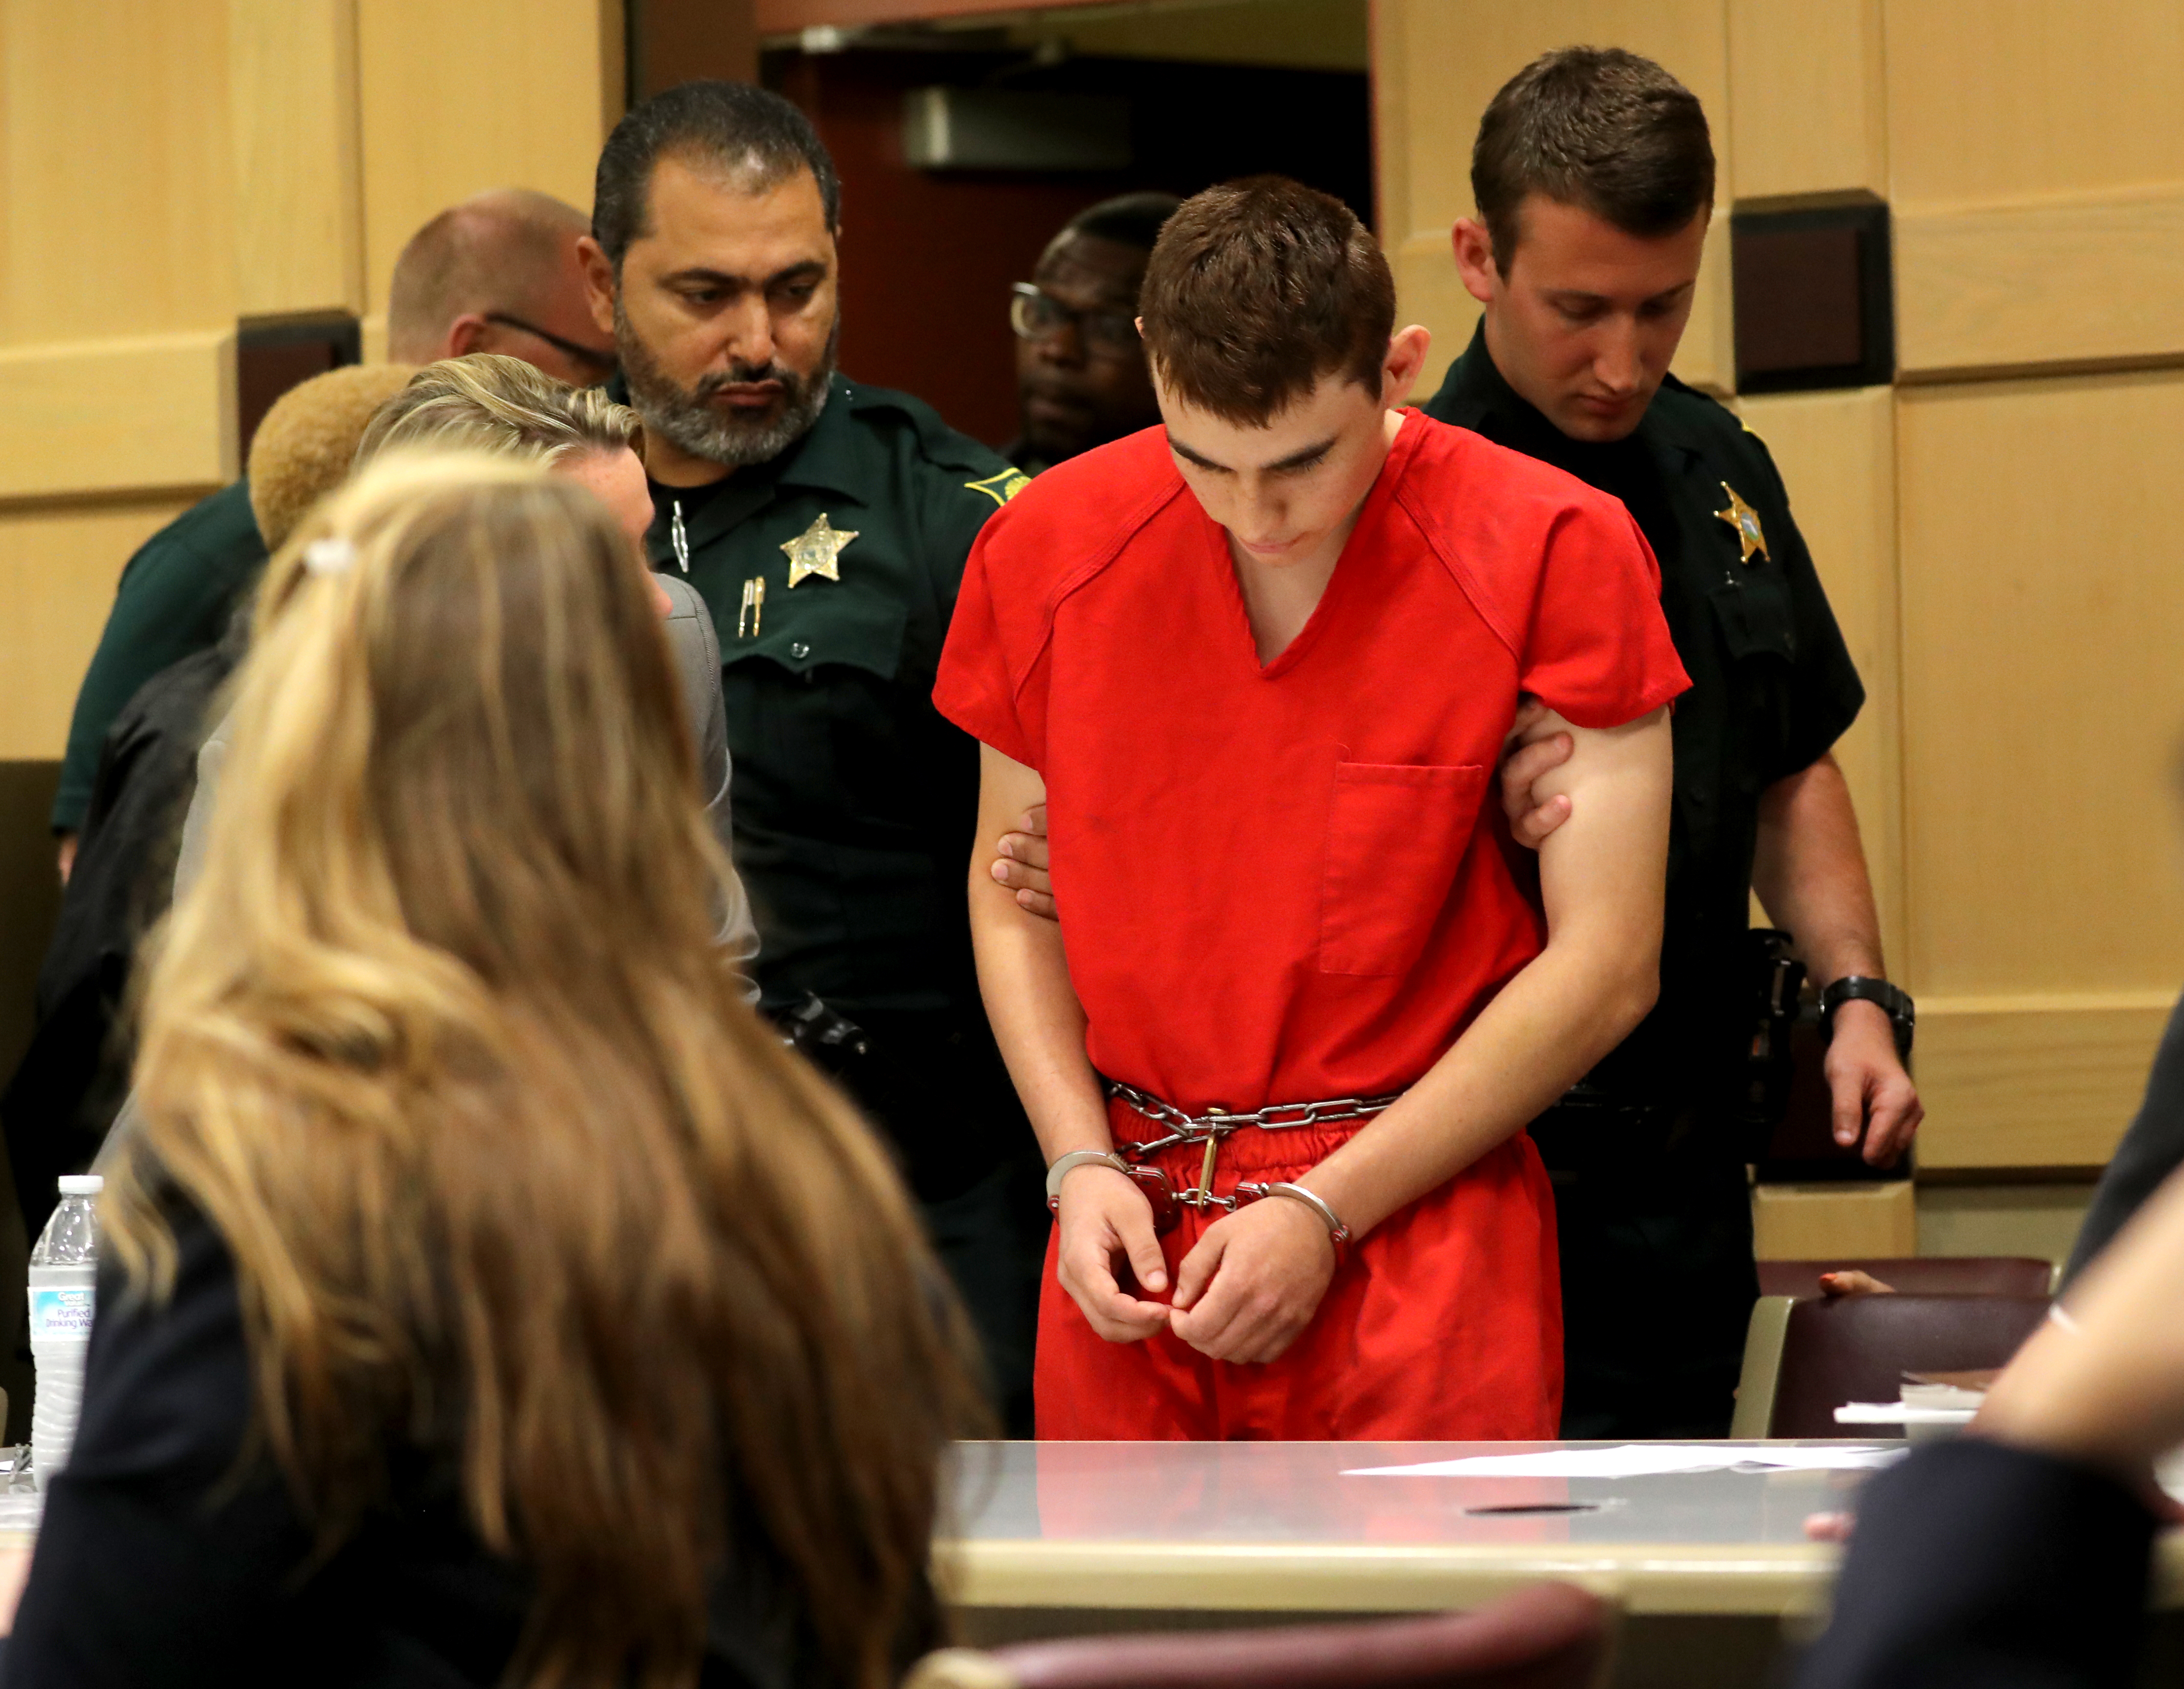 FT. LAUDERDALE - FEBRUARY 19: Nikolas Cruz appears in court for a status hearing before Broward Circuit Judge Elizabeth Scherer on February 19, 2018 in Ft. Lauderdale, Florida. (Photo by Mike Stocker-Pool/Getty Images)